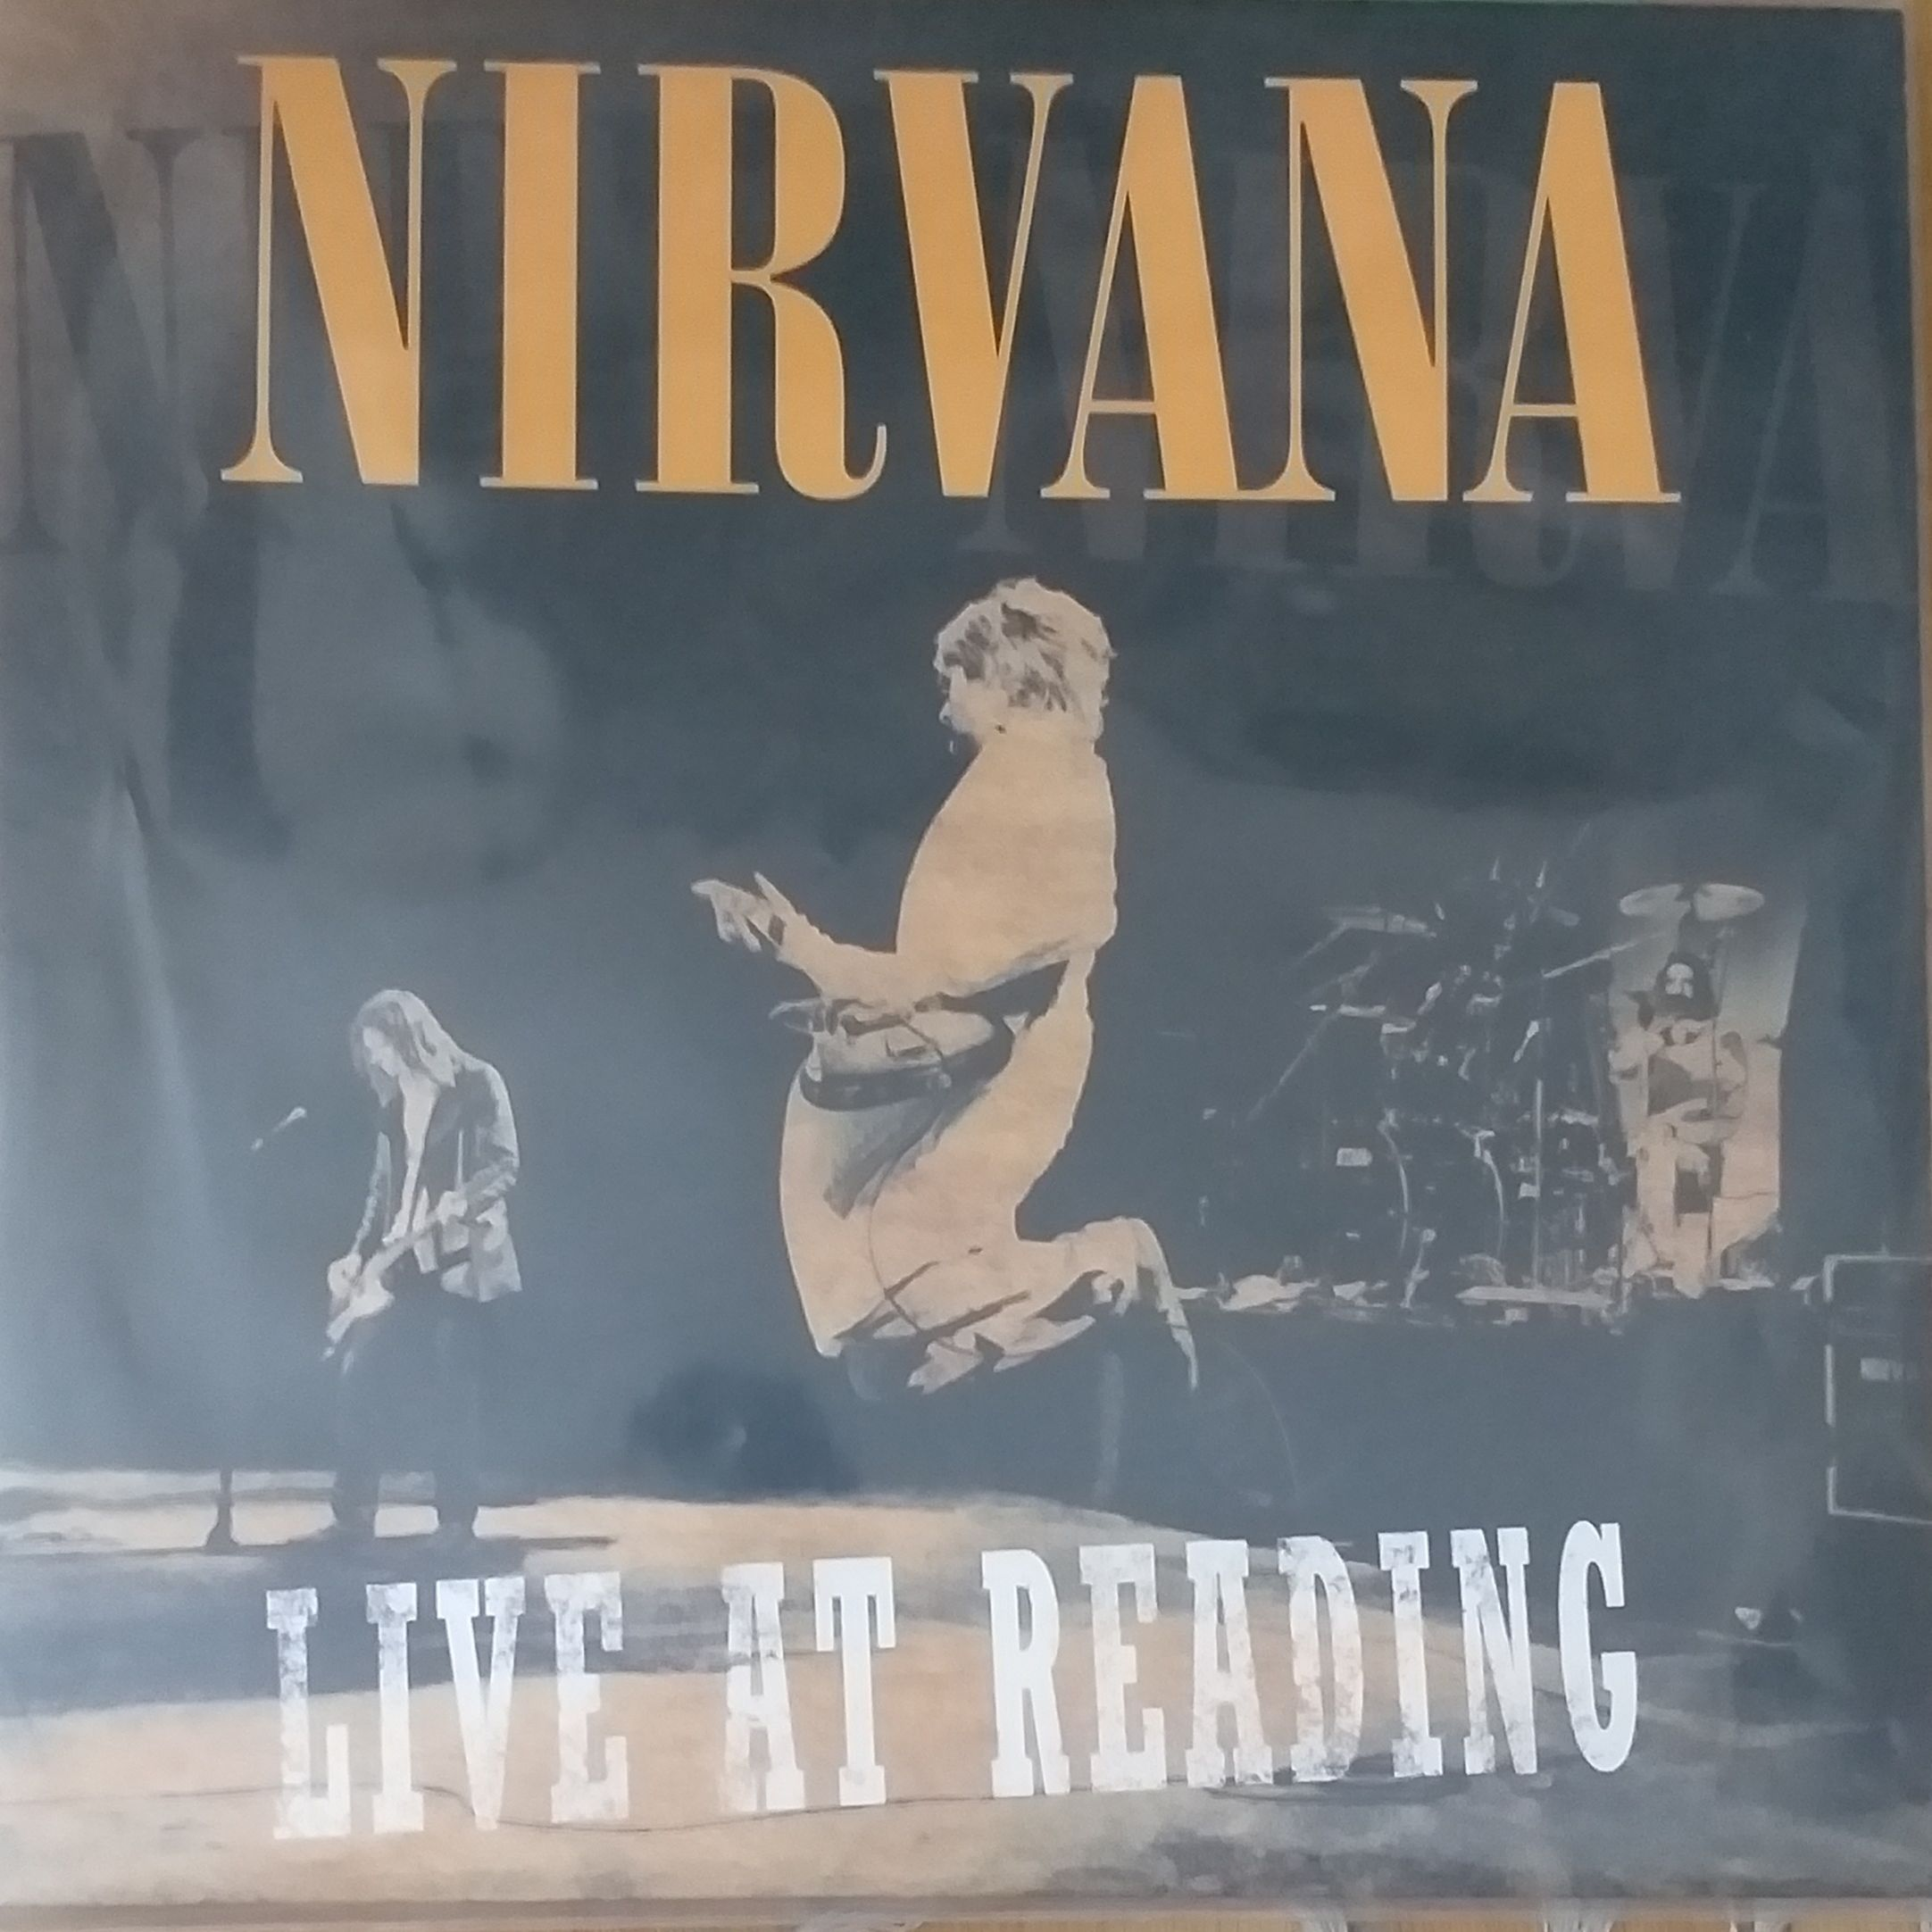 Nirvana Live at reading LP undefined